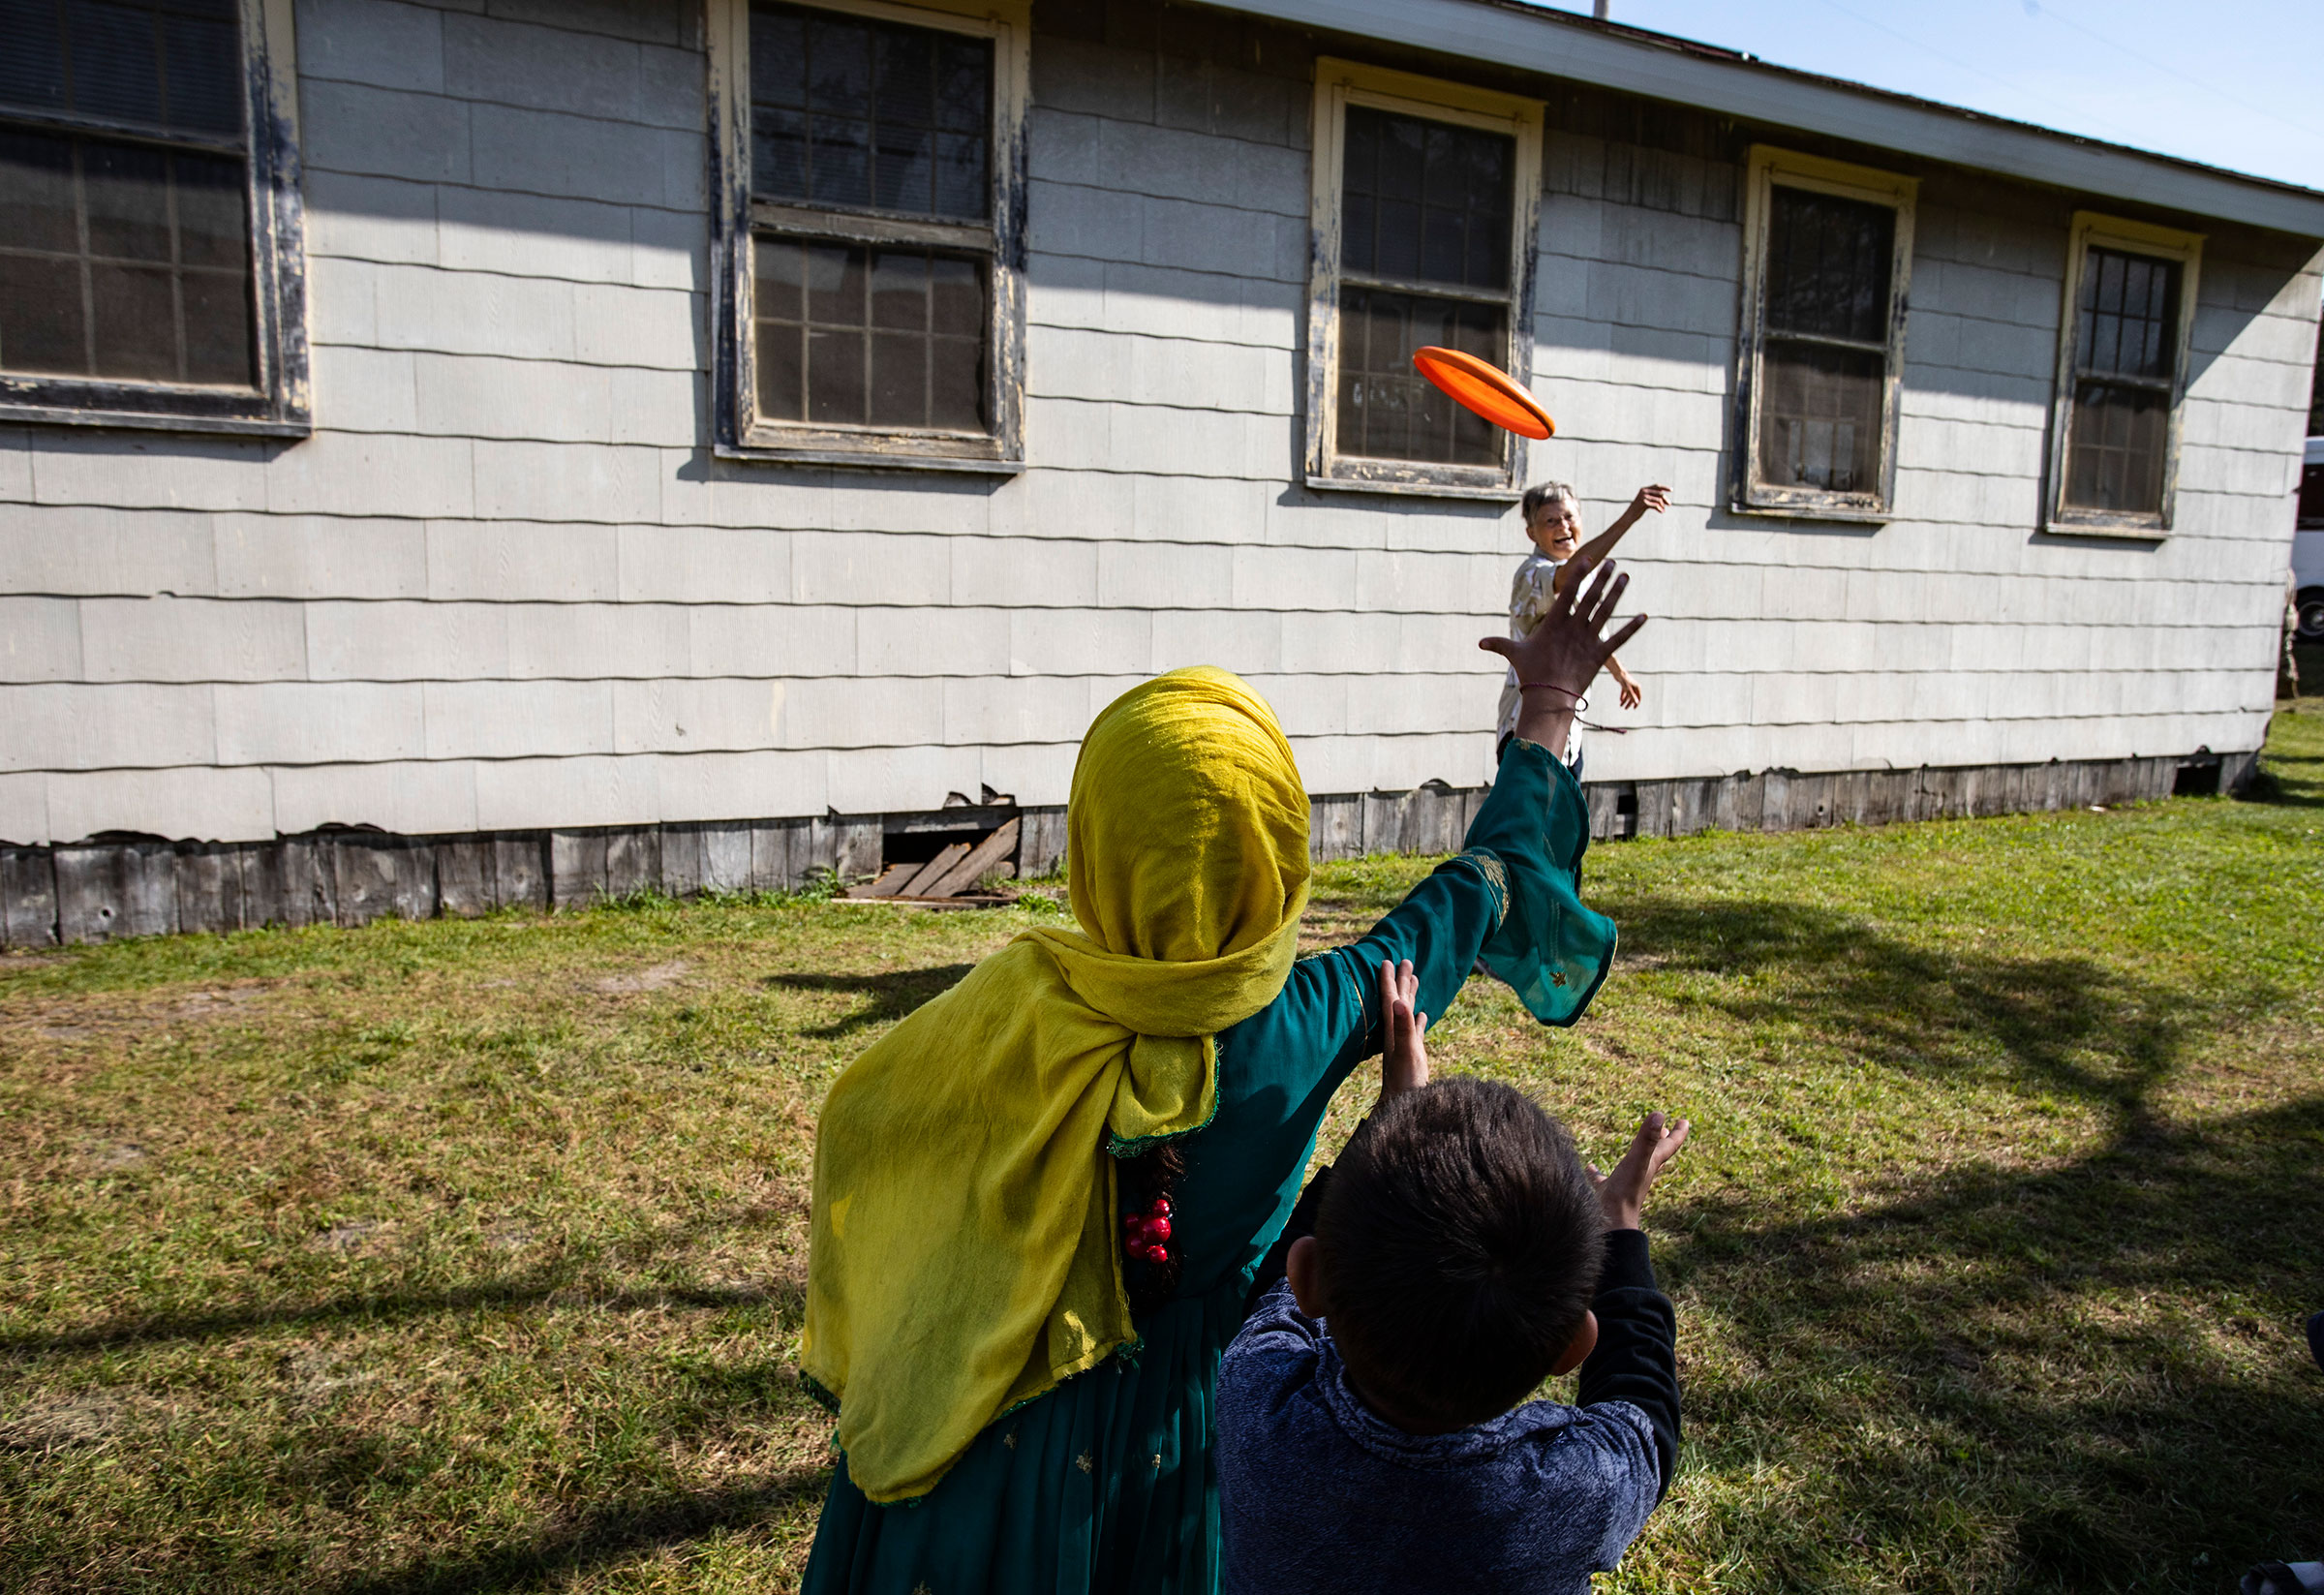 Volunteer Sandra Hoeser plays frisbee with Afghan refugees at the Ft. McCoy U.S. Army base on September 30, 2021 in Ft. McCoy, Wisconsin.